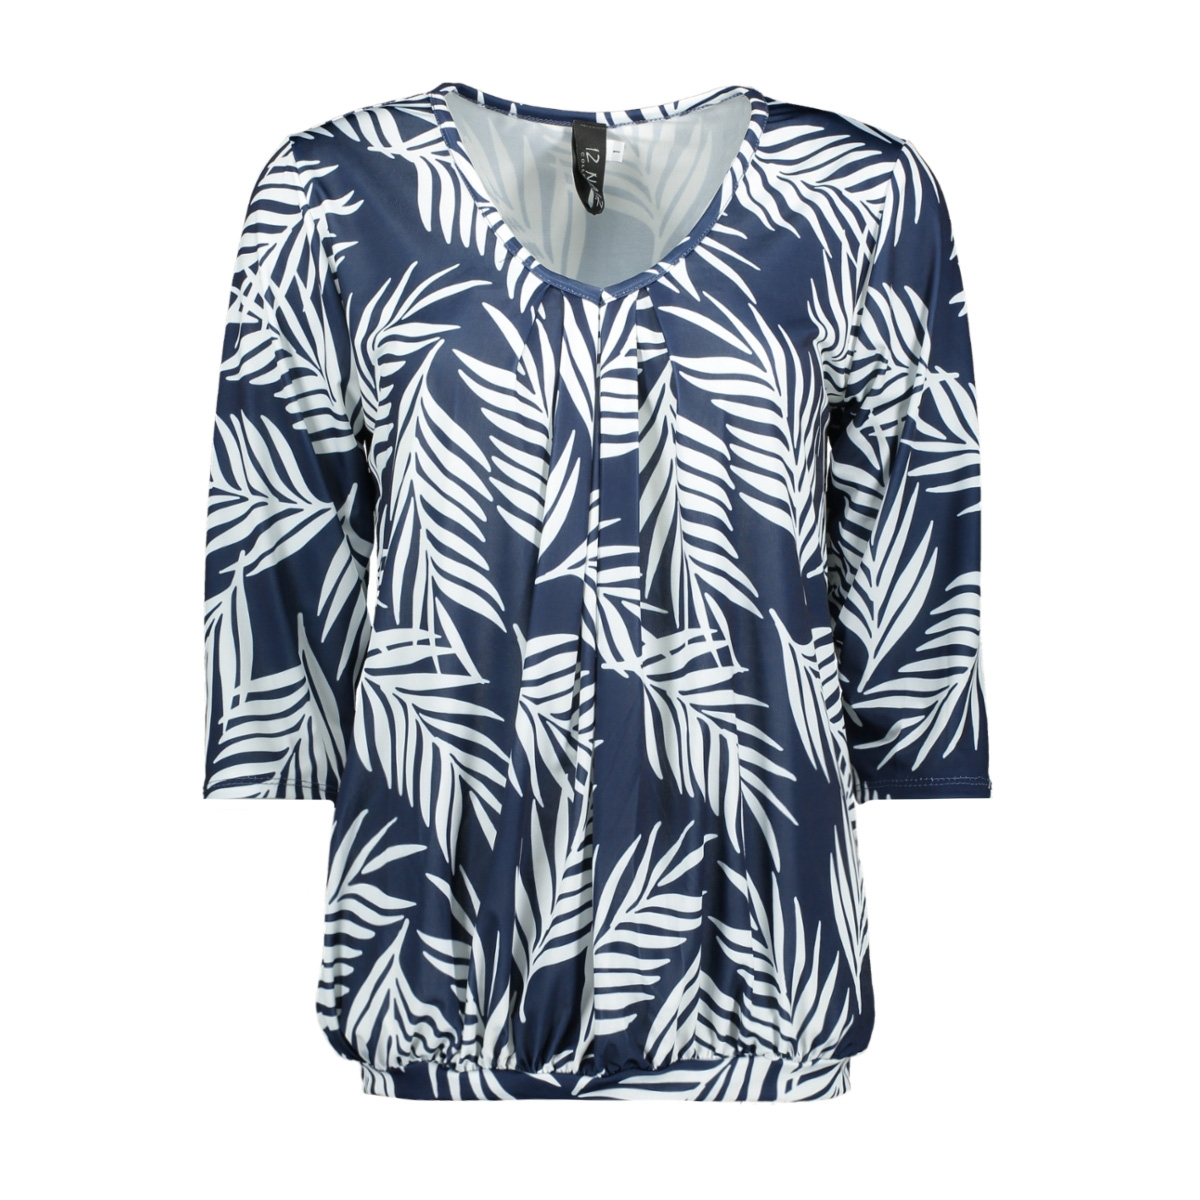 t-shirt leaf 3418 iz naiz t-shirt navy